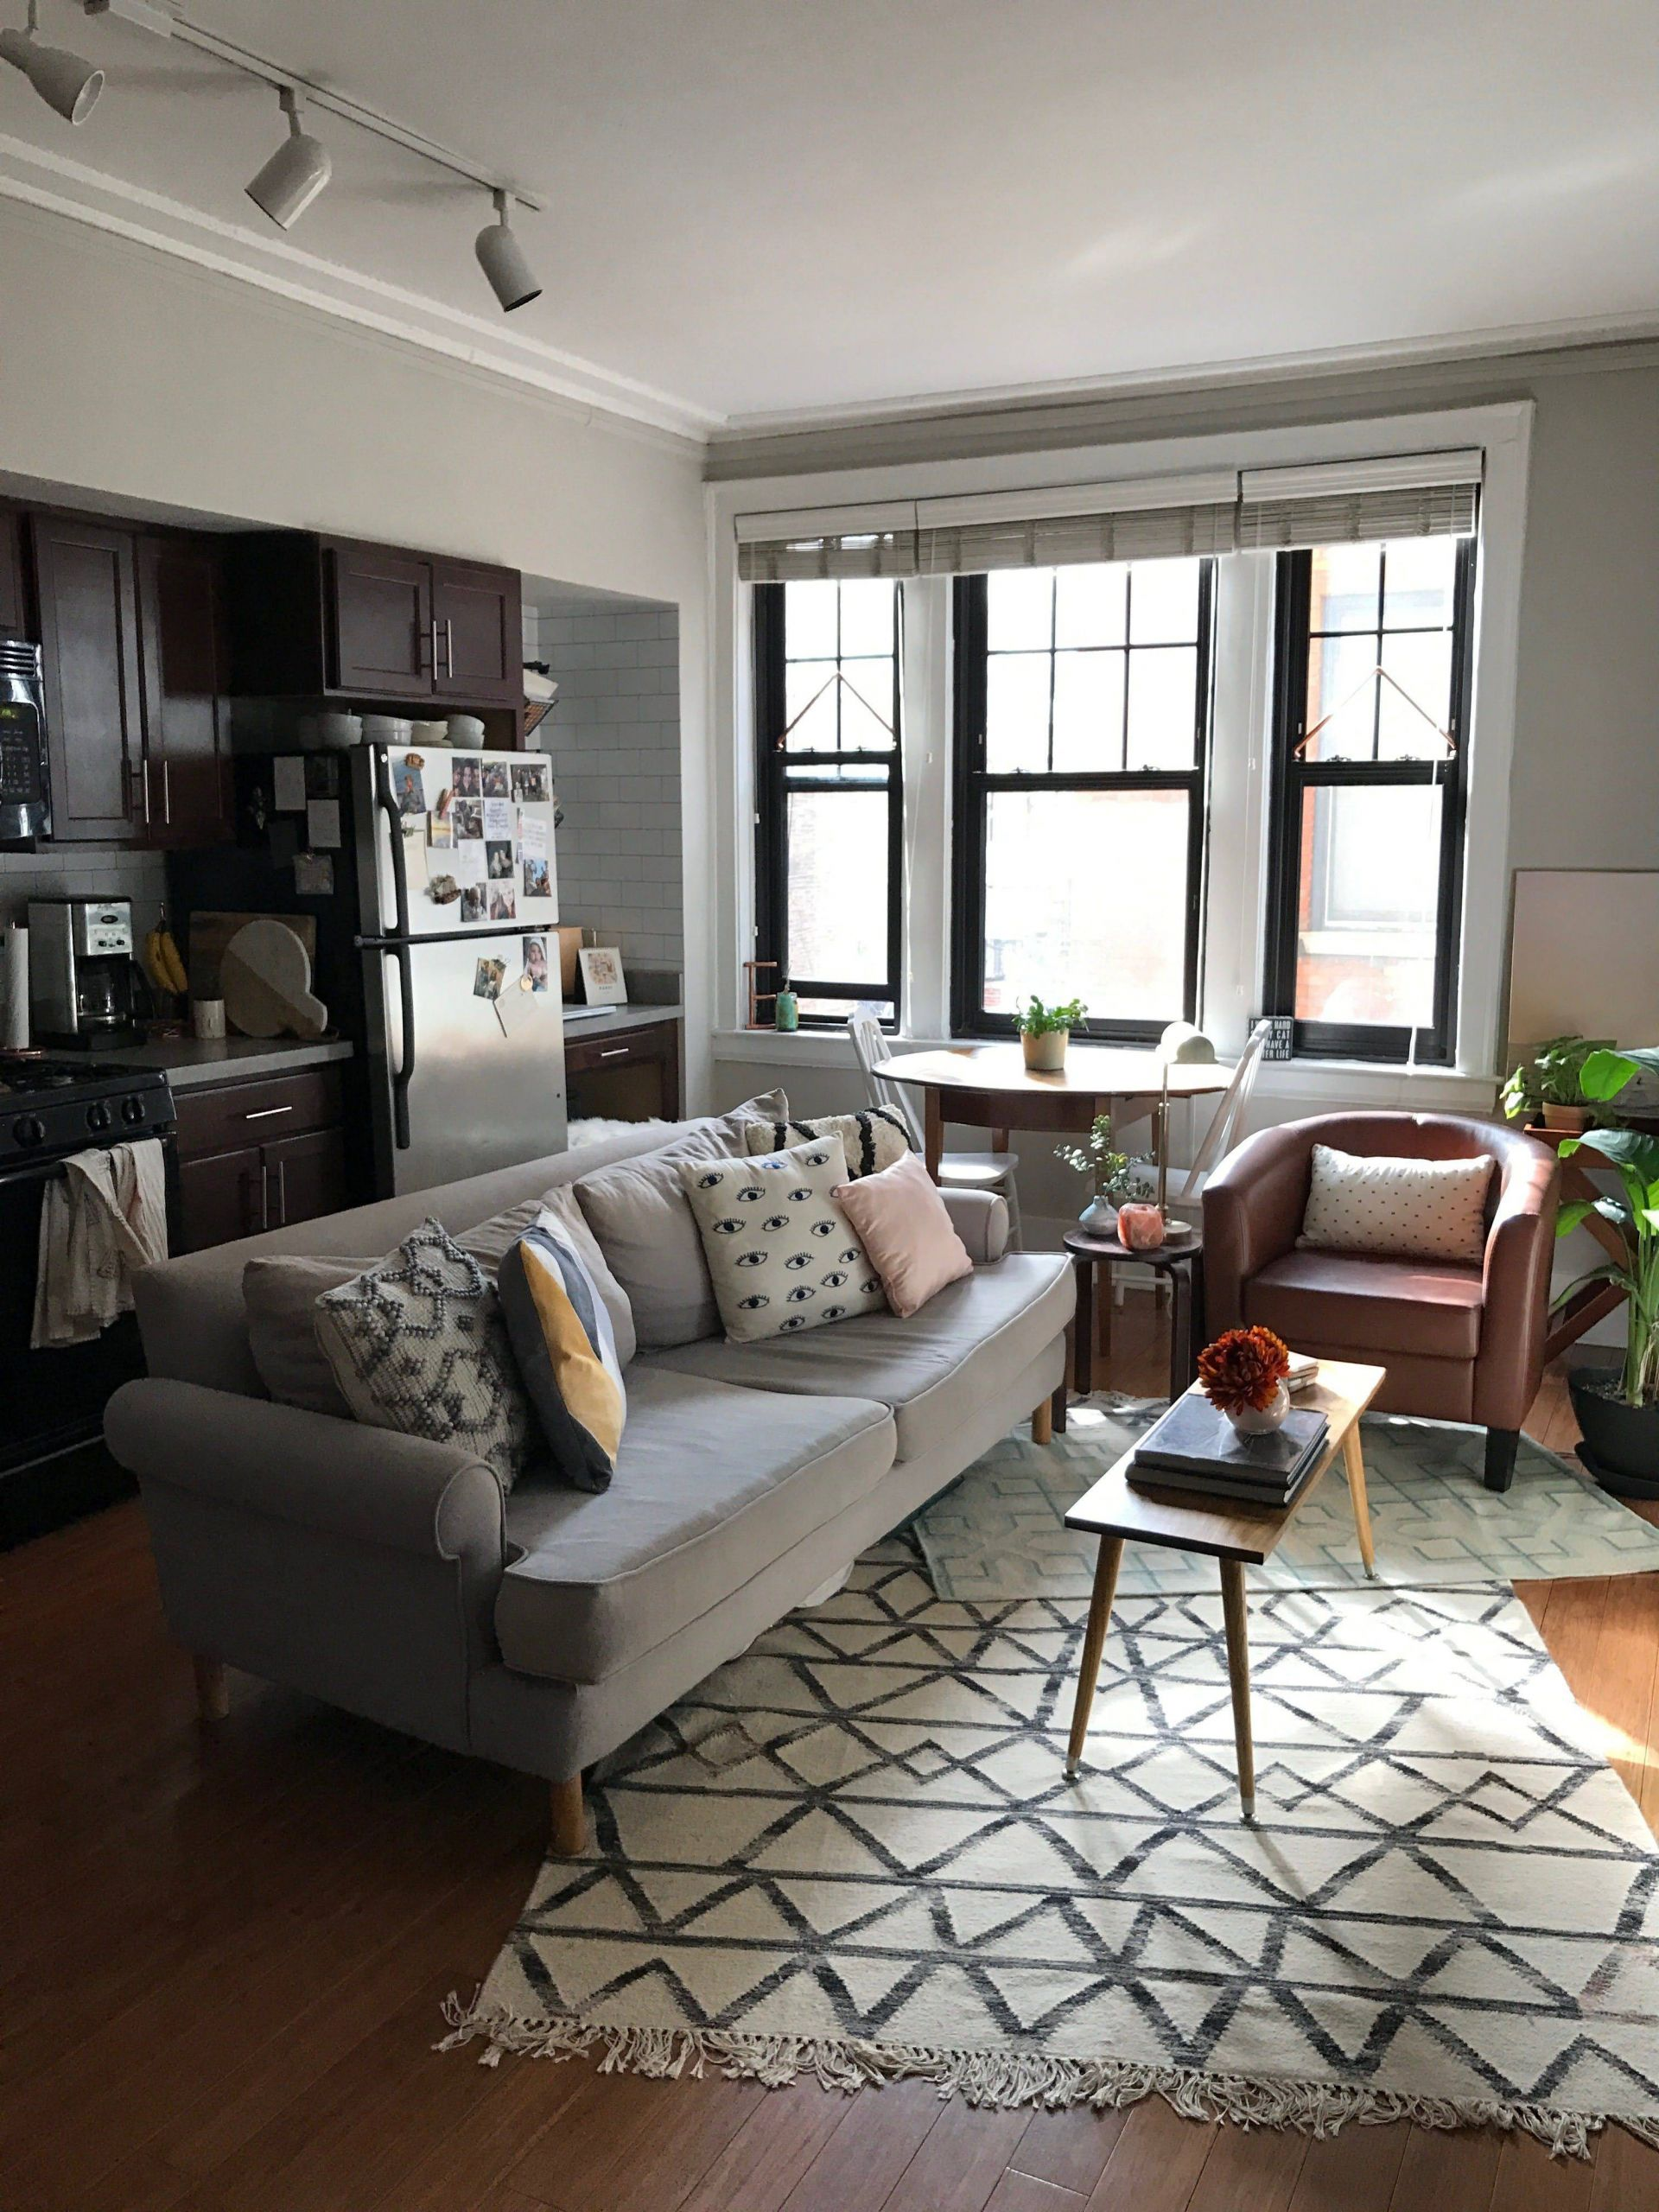 Small Apartments Design Beautiful A Smart Layout Makes This Studio Feel Big and Bright